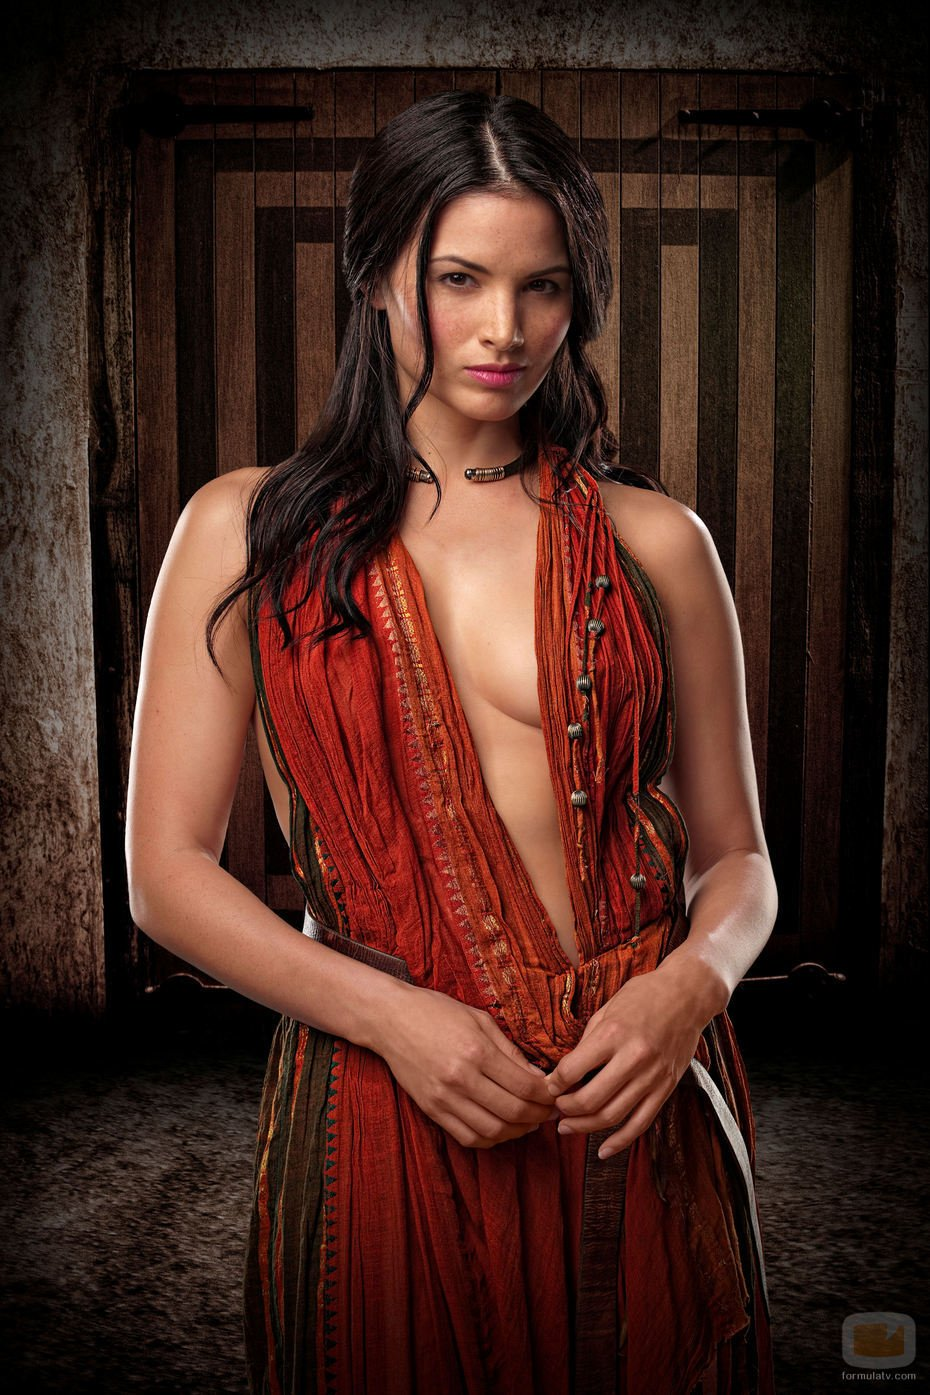 Spartacus: Vengeance. Katrina Law as Mira